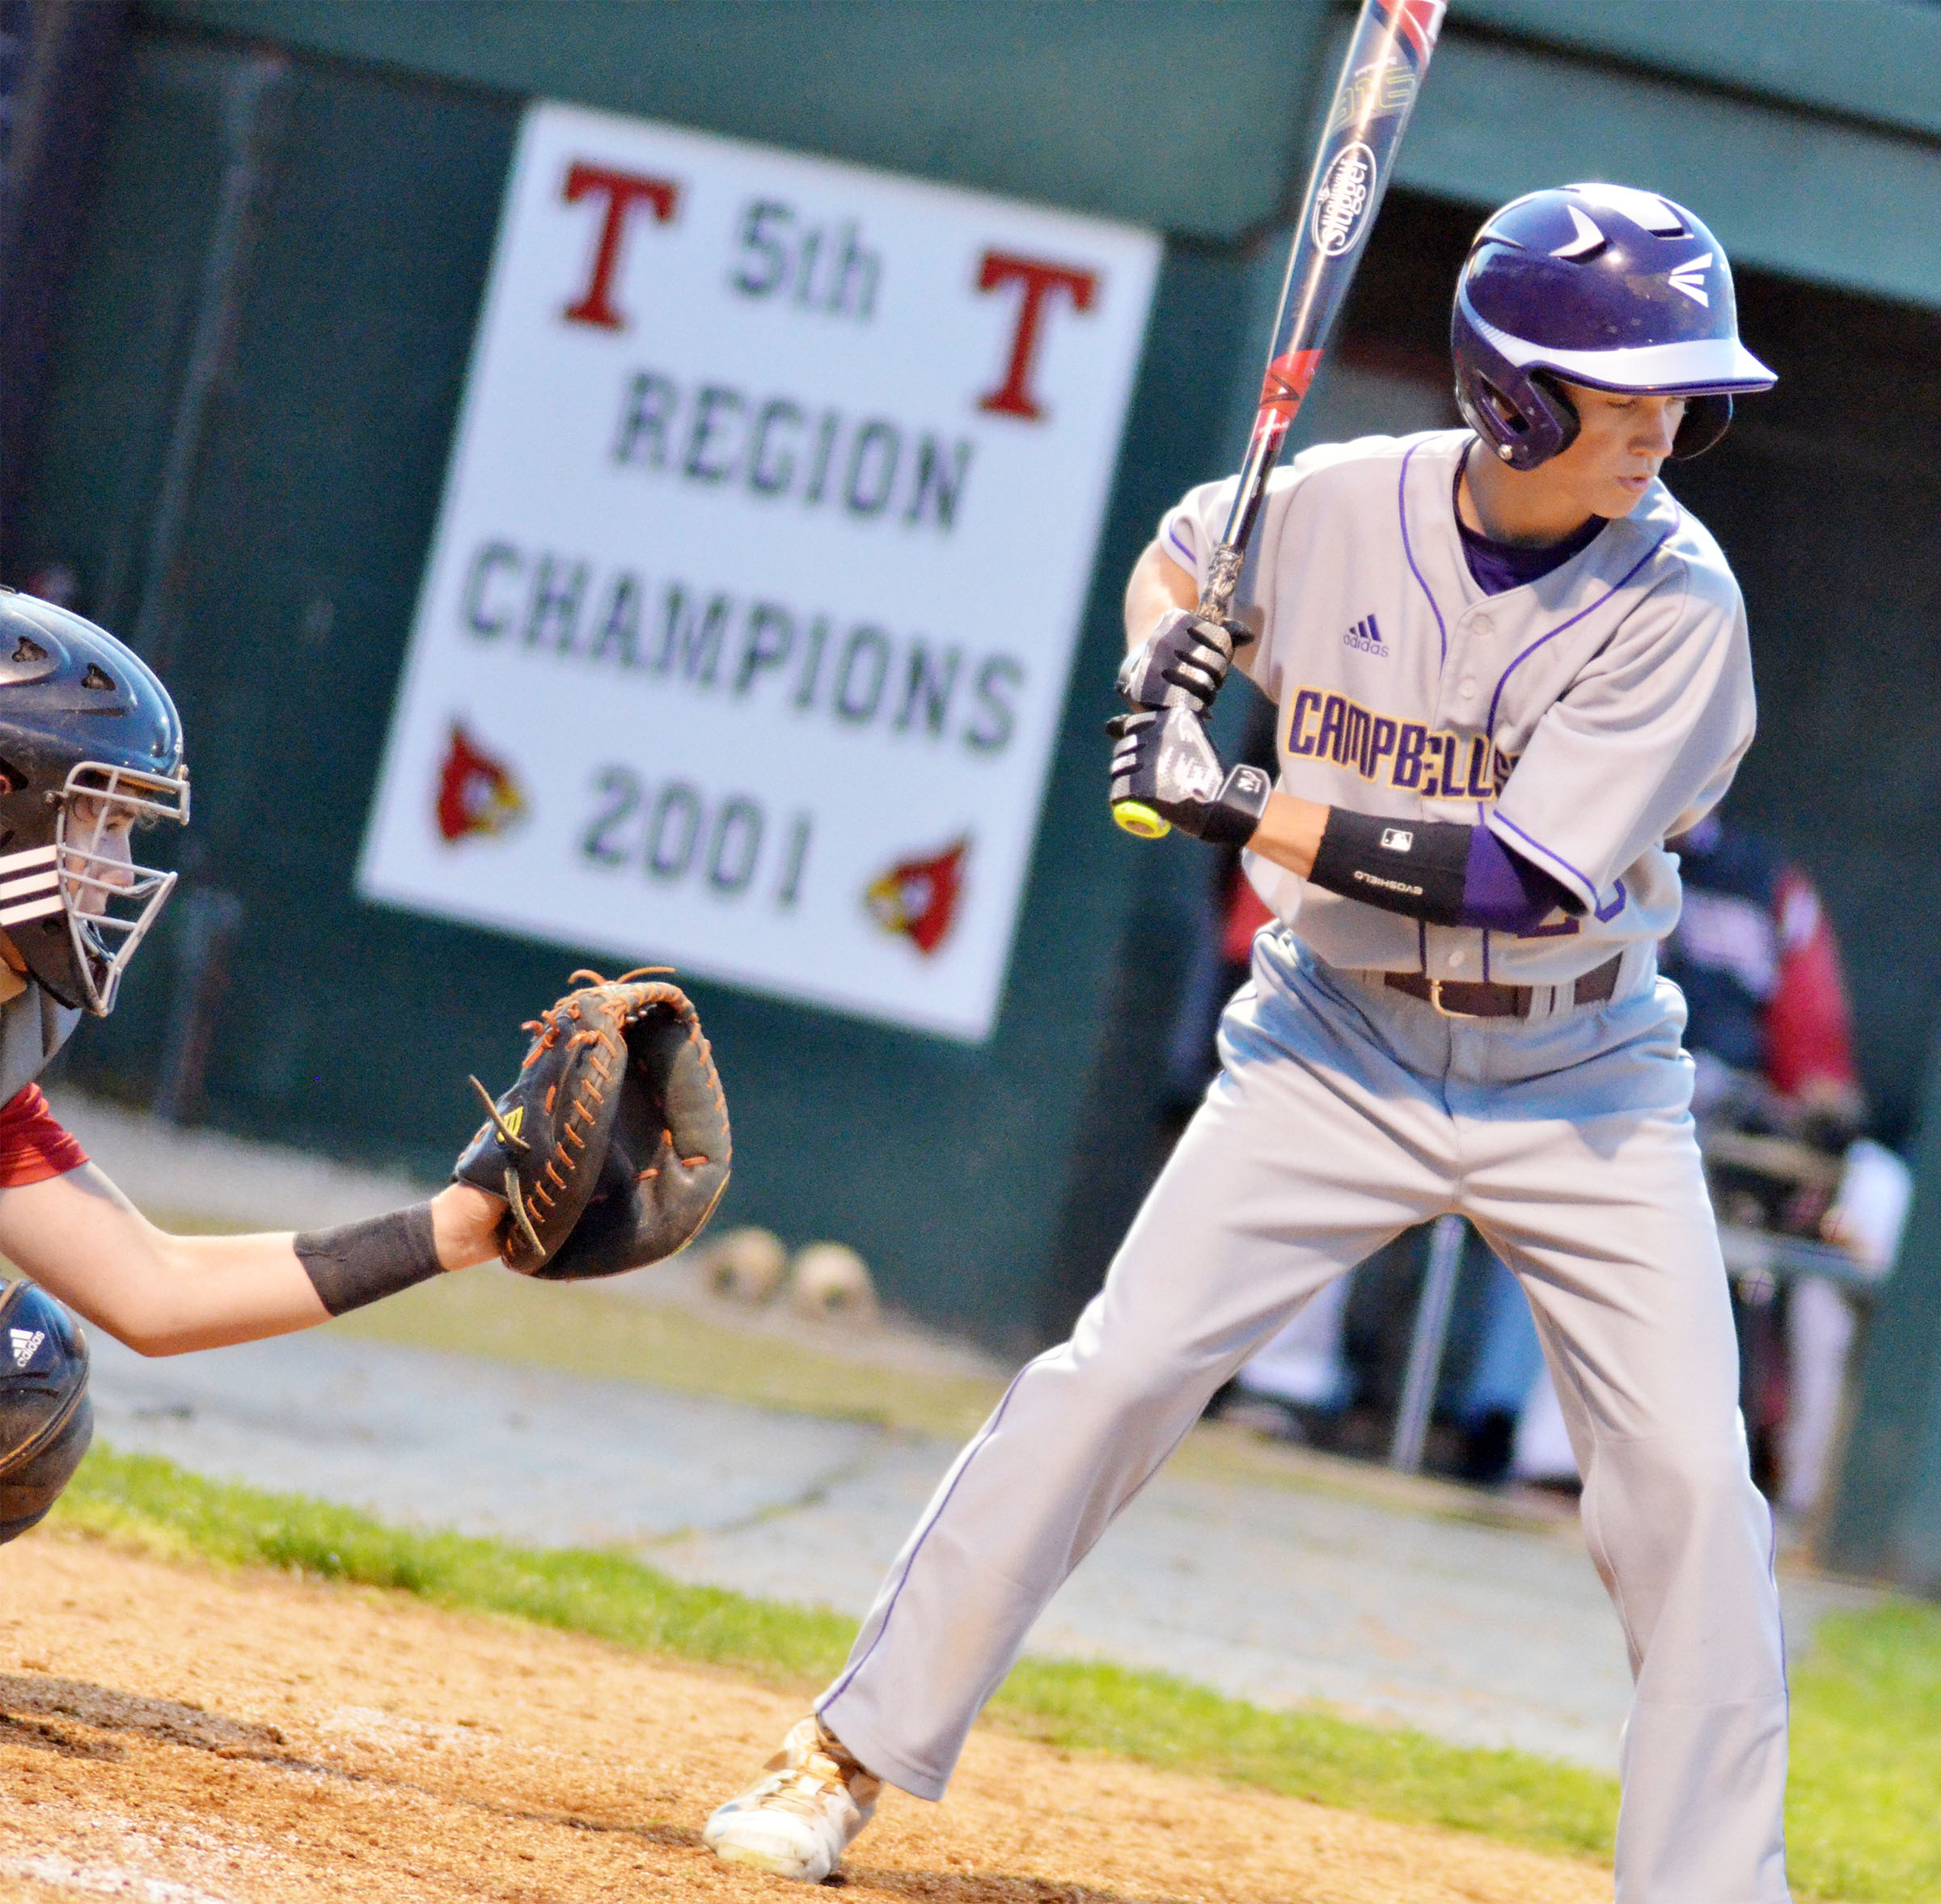 Campbellsville Middle School eighth-grader Blase Wheatley bats.